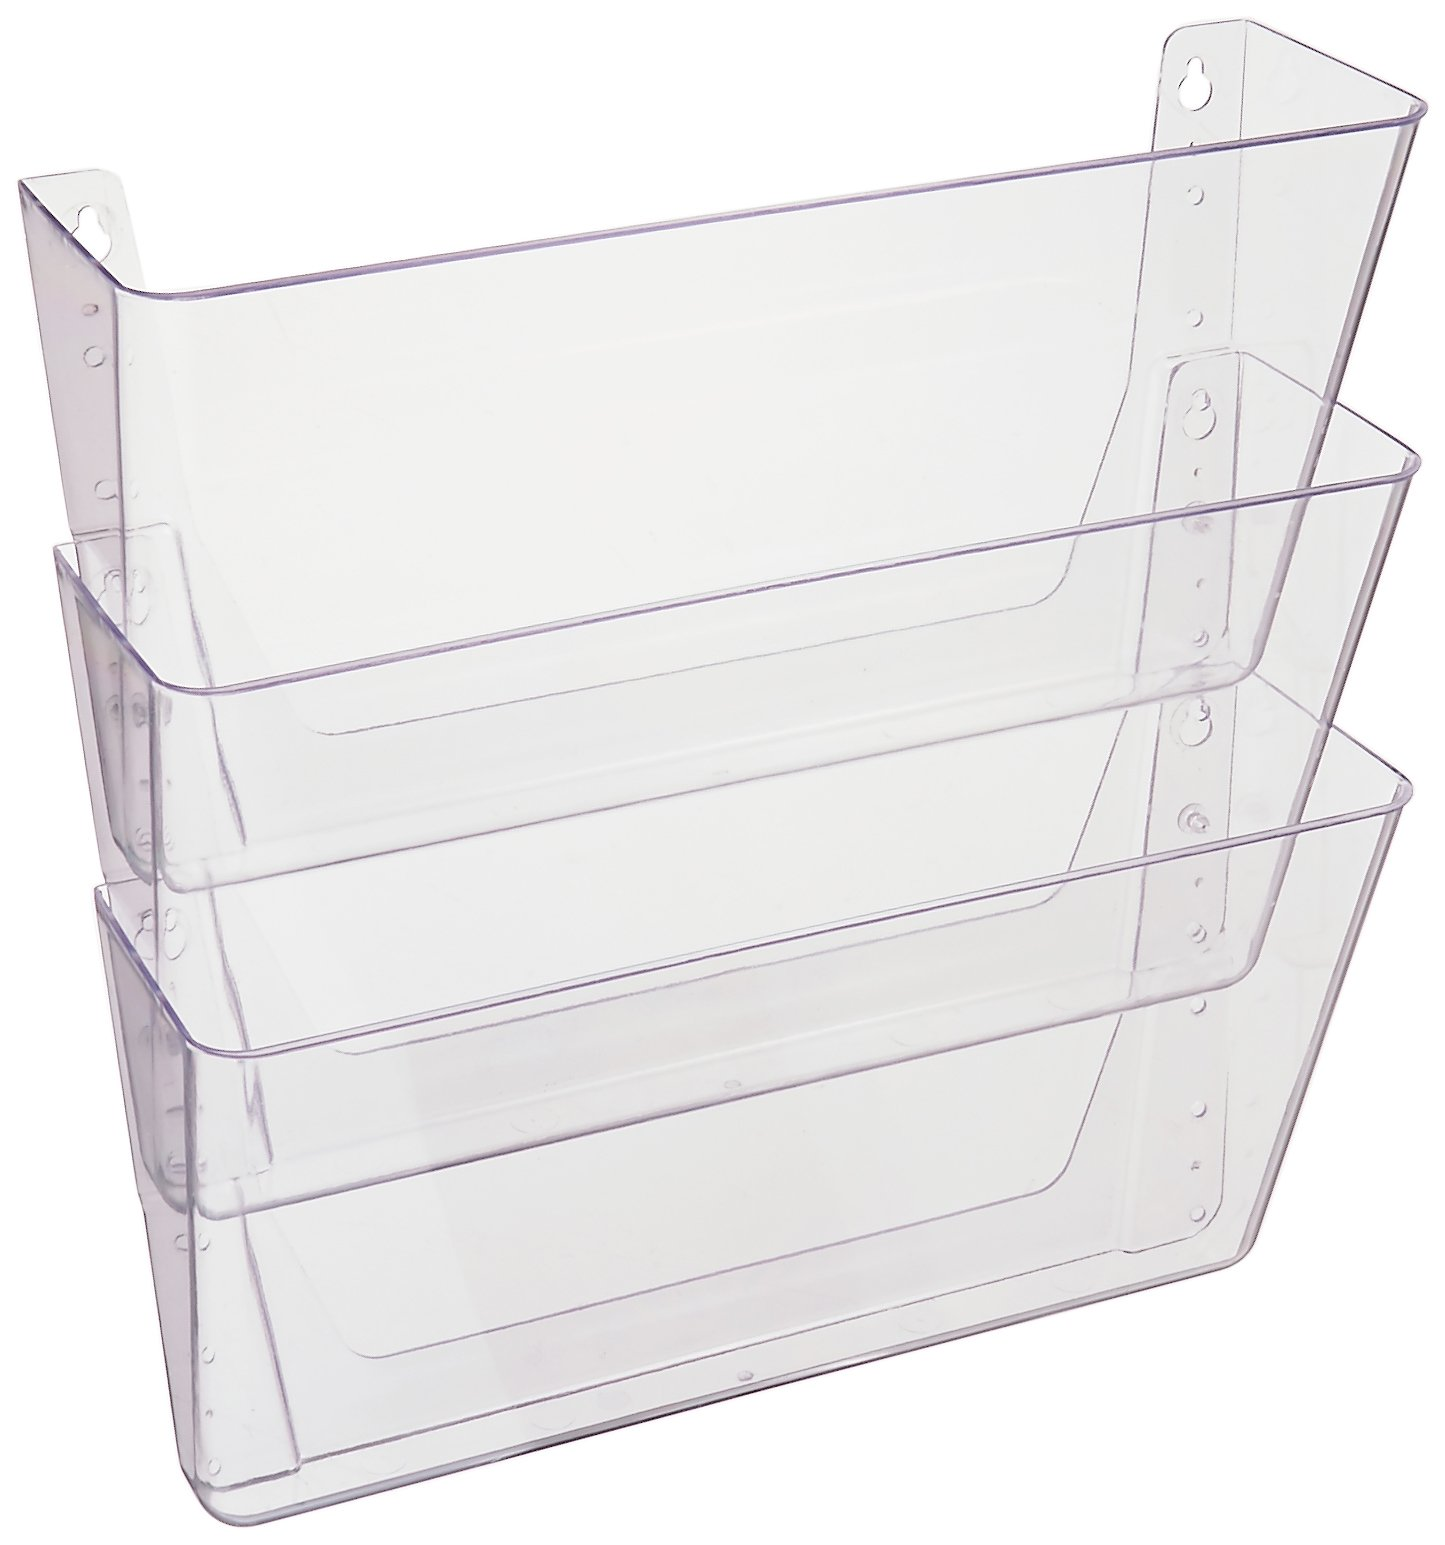 Deflecto DocuPocket, Wall File Organizer, Stackable, Letter Size, Clear, Set of 3, 13''W x 7''H x 4''D